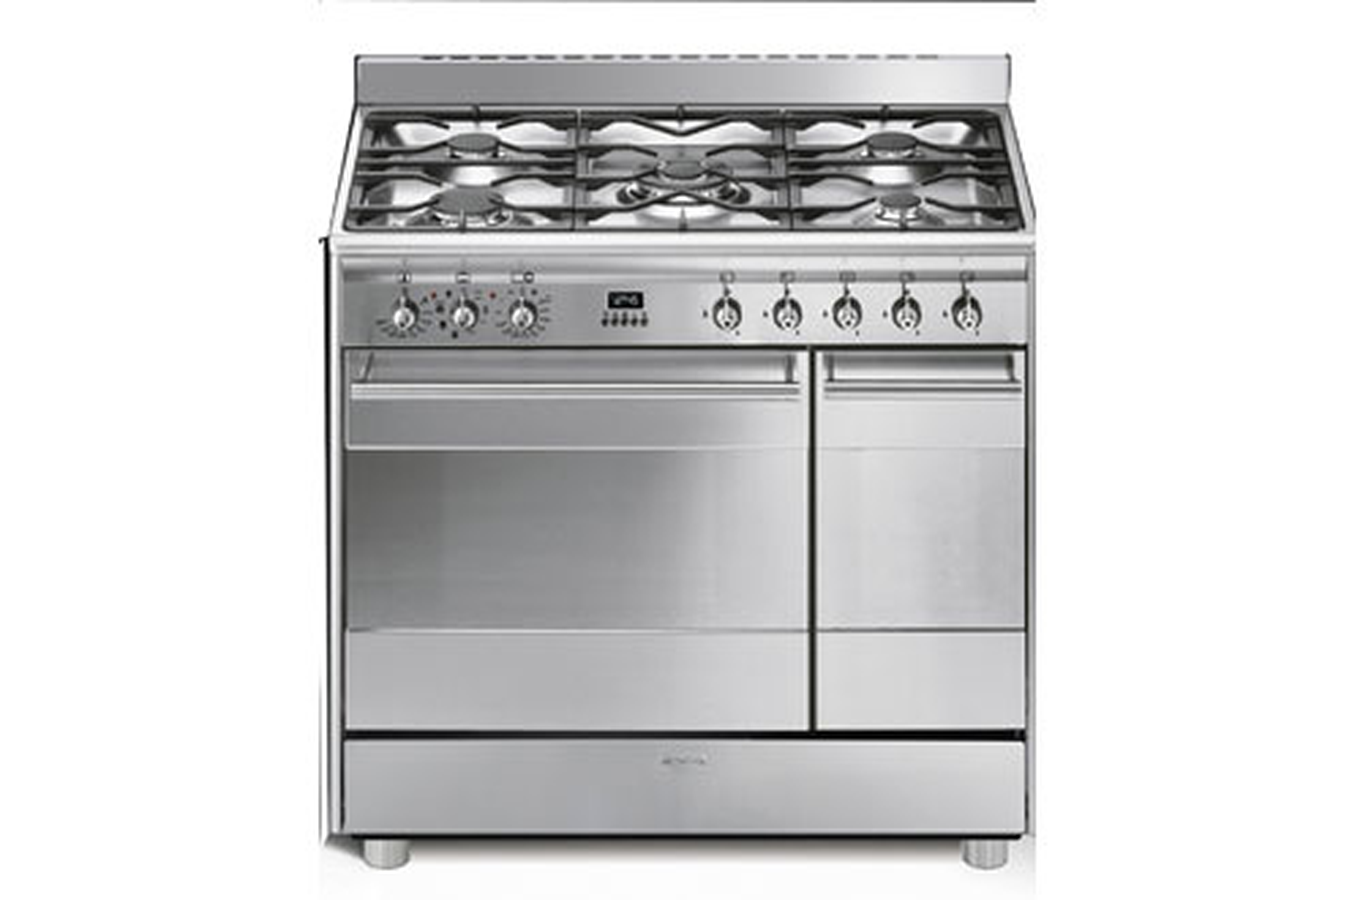 Piano de cuisson smeg scb92mx8 inox 3415376 darty - Piano induction smeg ...